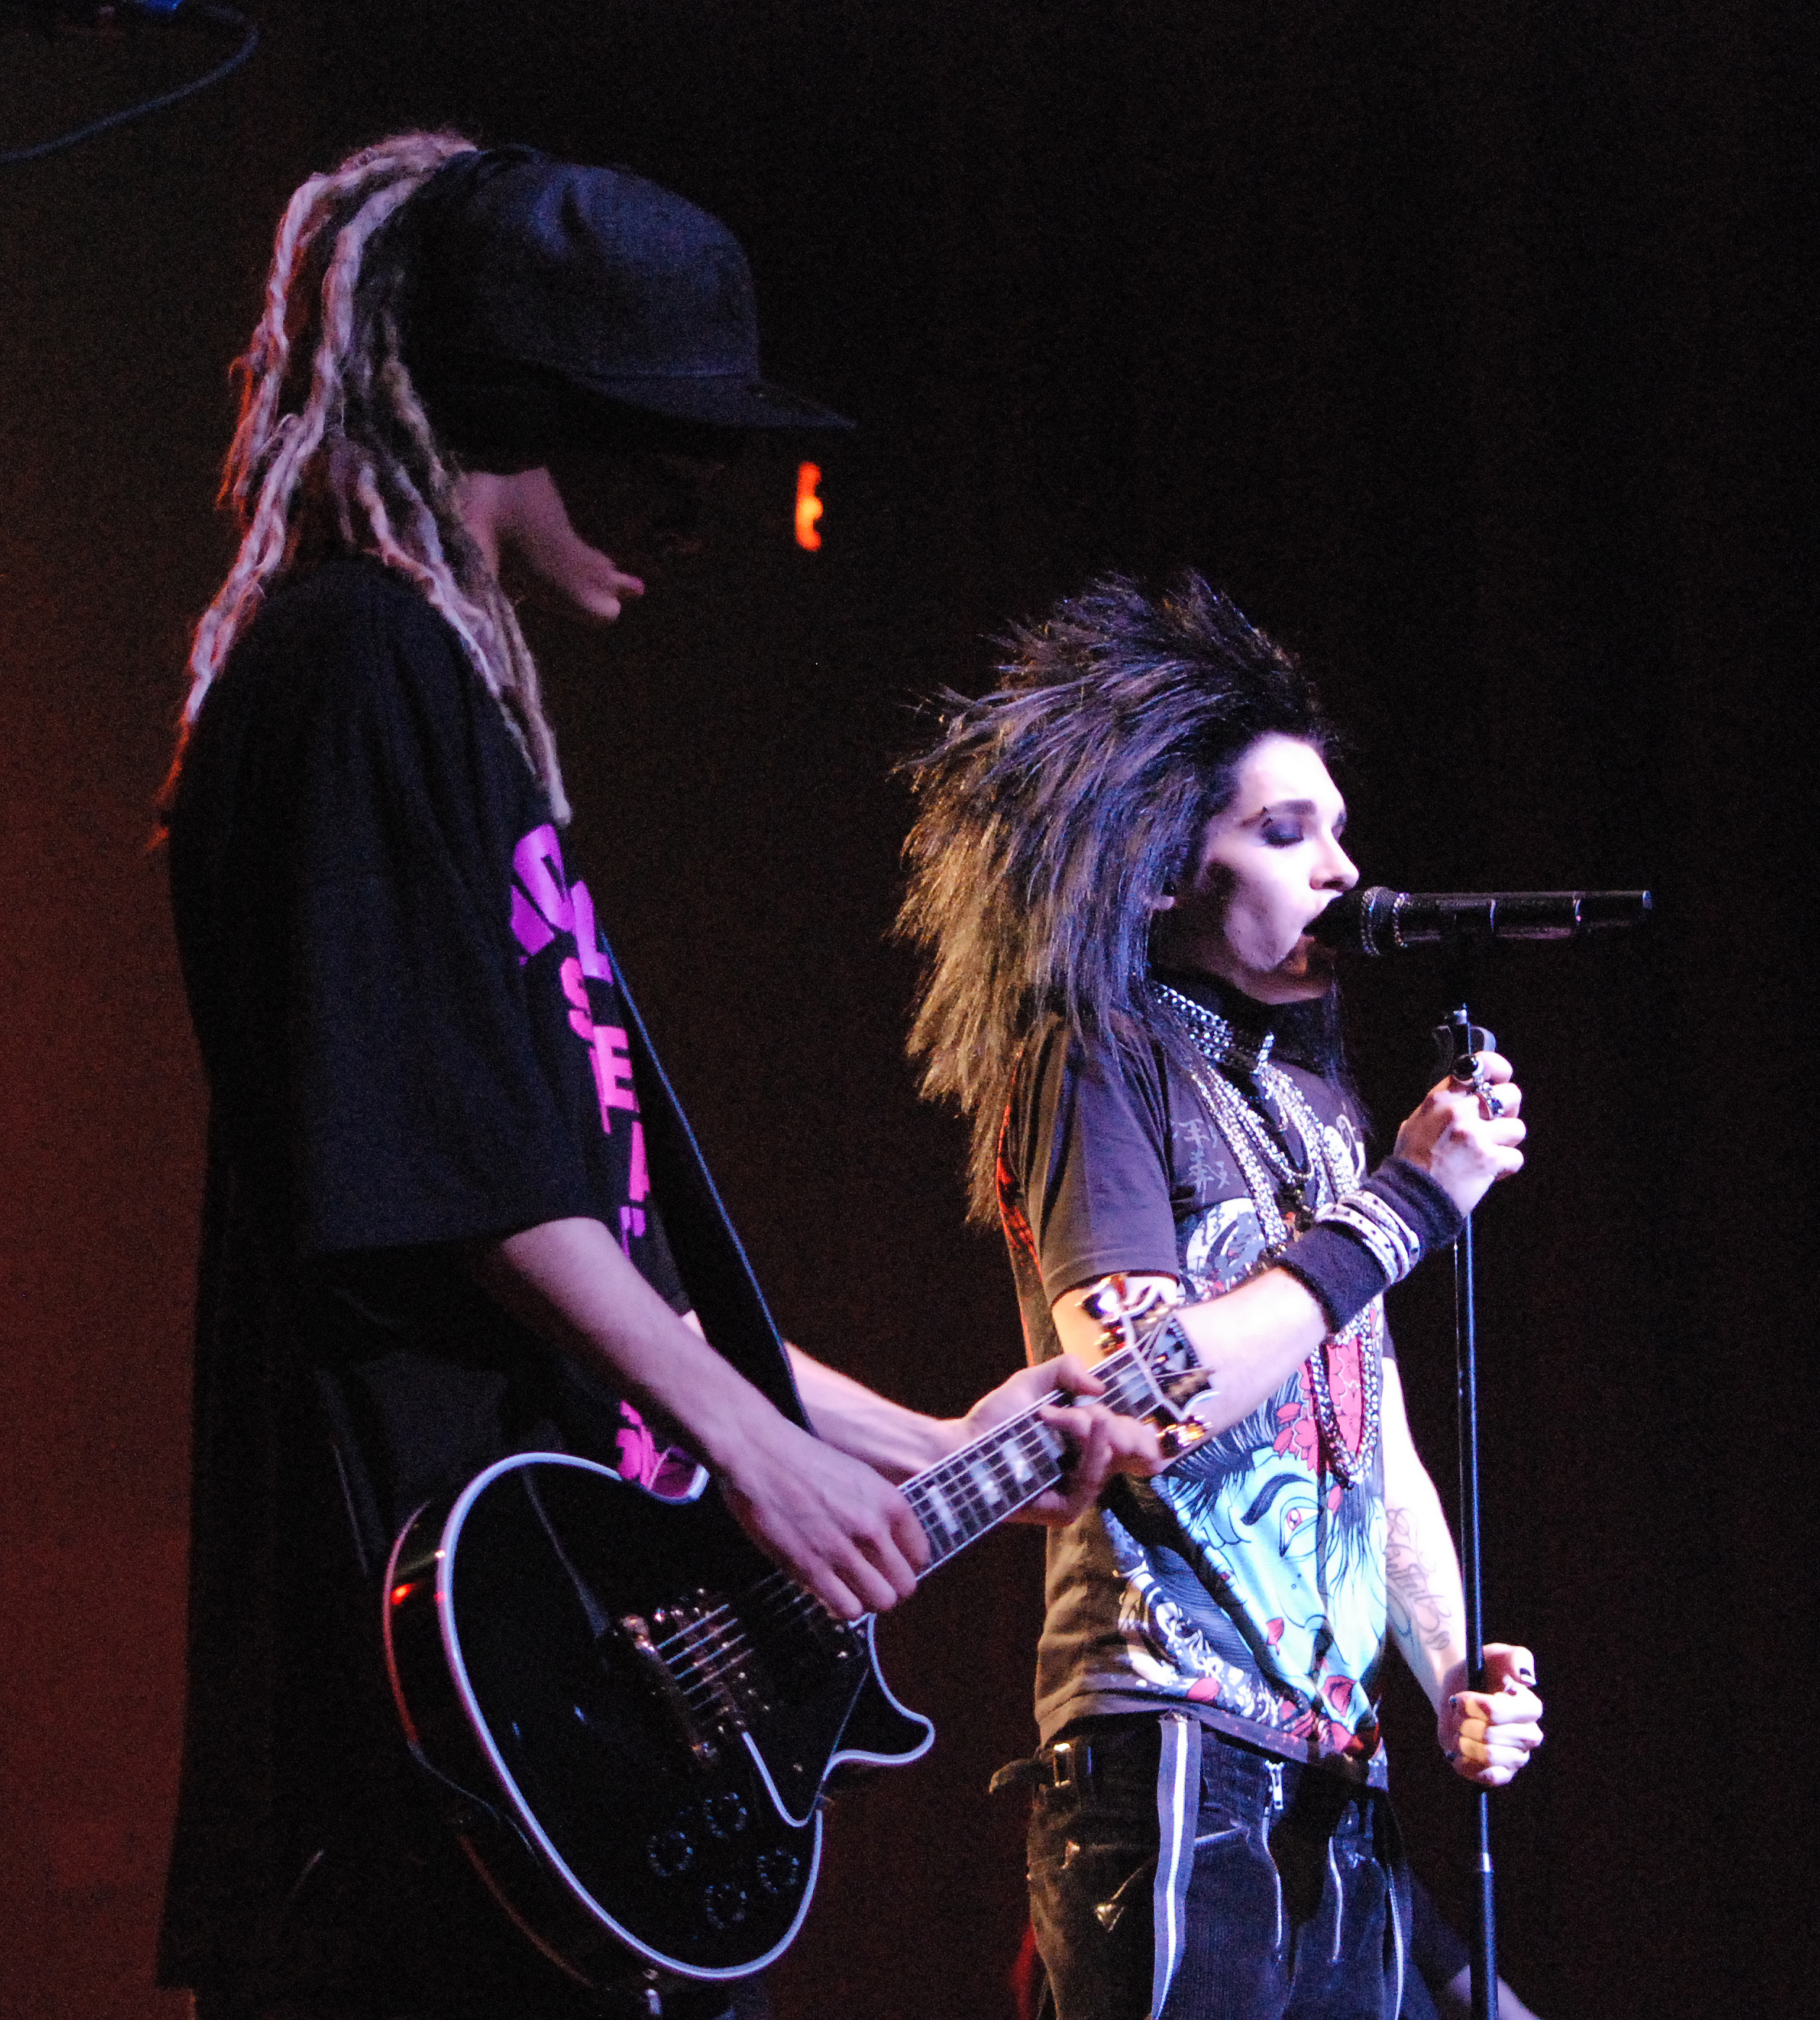 DSC_9583a.jpg - Tokio Hotel - October 26, 2008 - Atlanta, Georgia